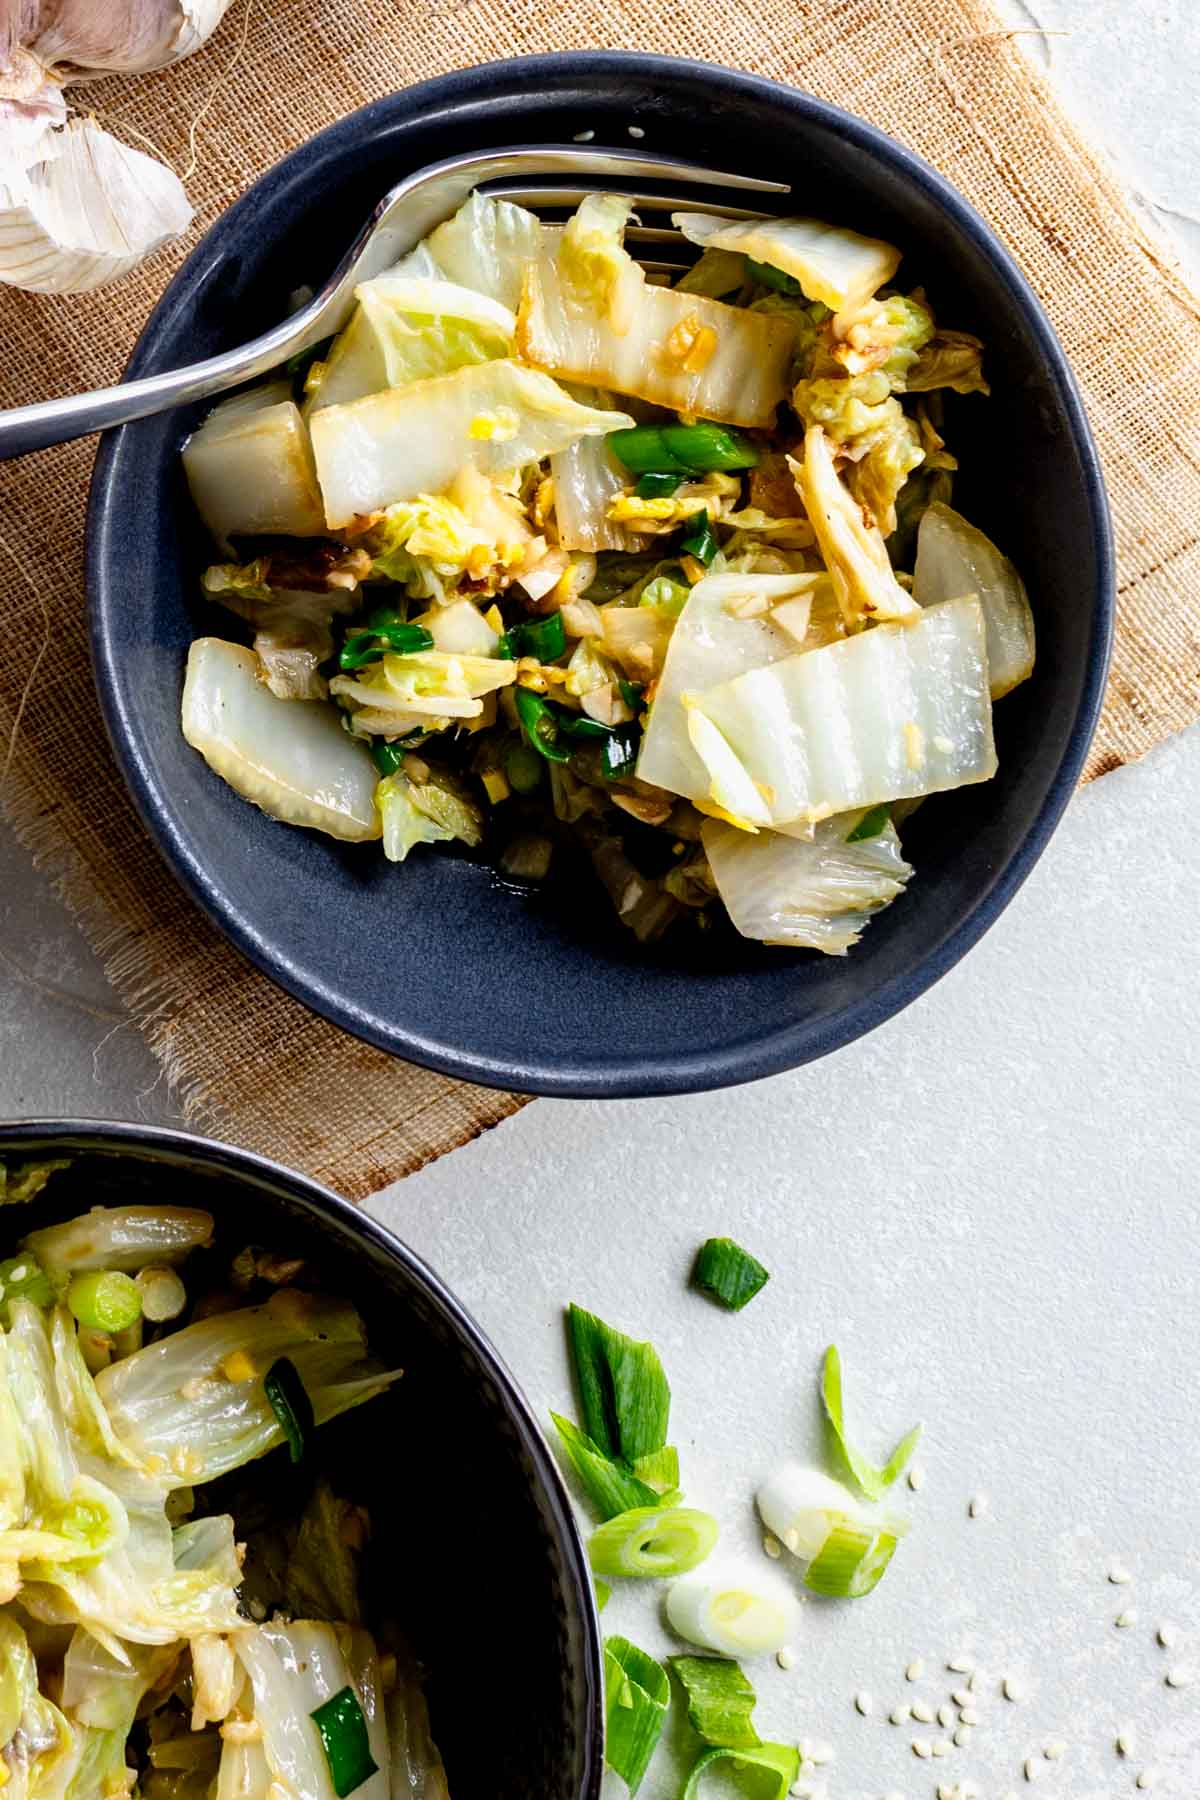 black bowls with stir-fried Napa cabbage in them